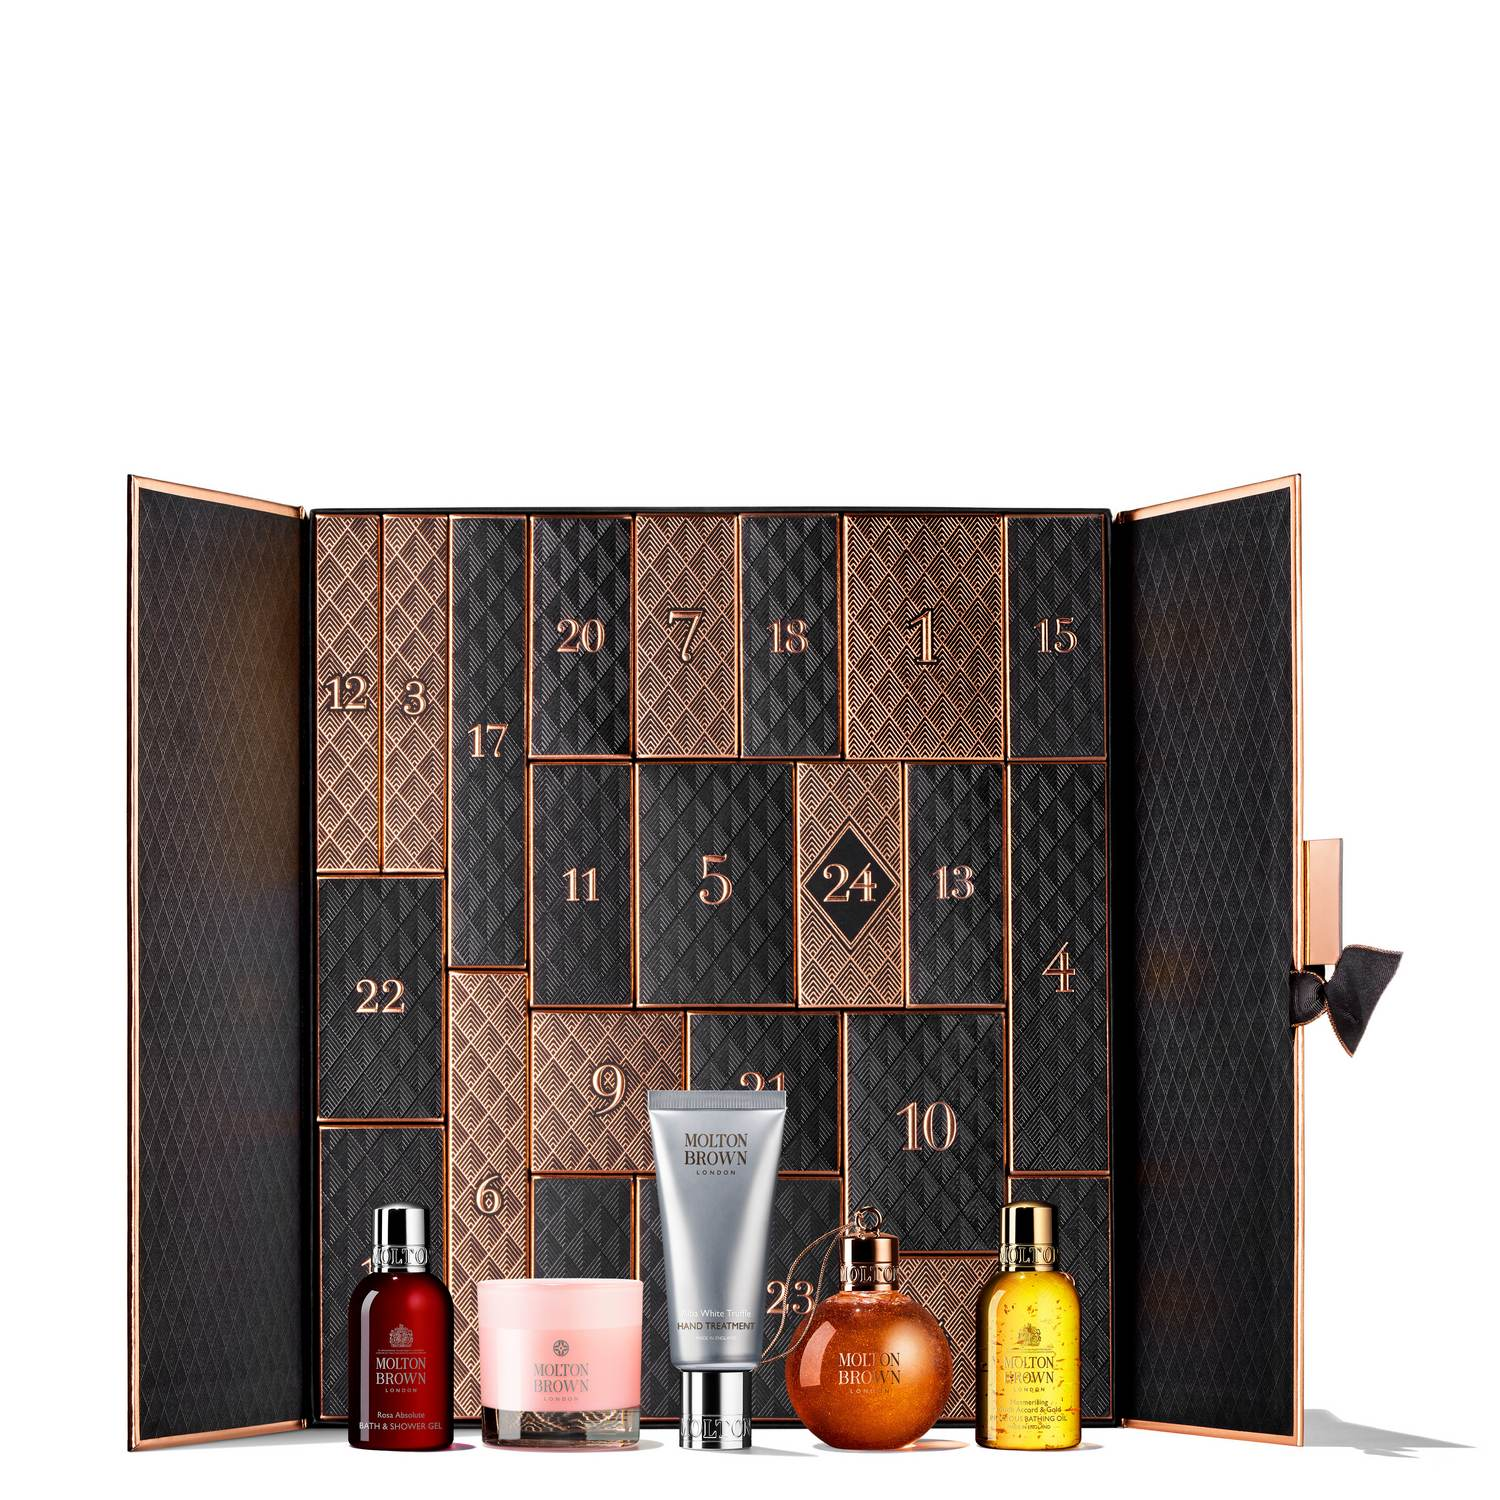 Molton Brown 2019 Advent Calendar by Molton Brown